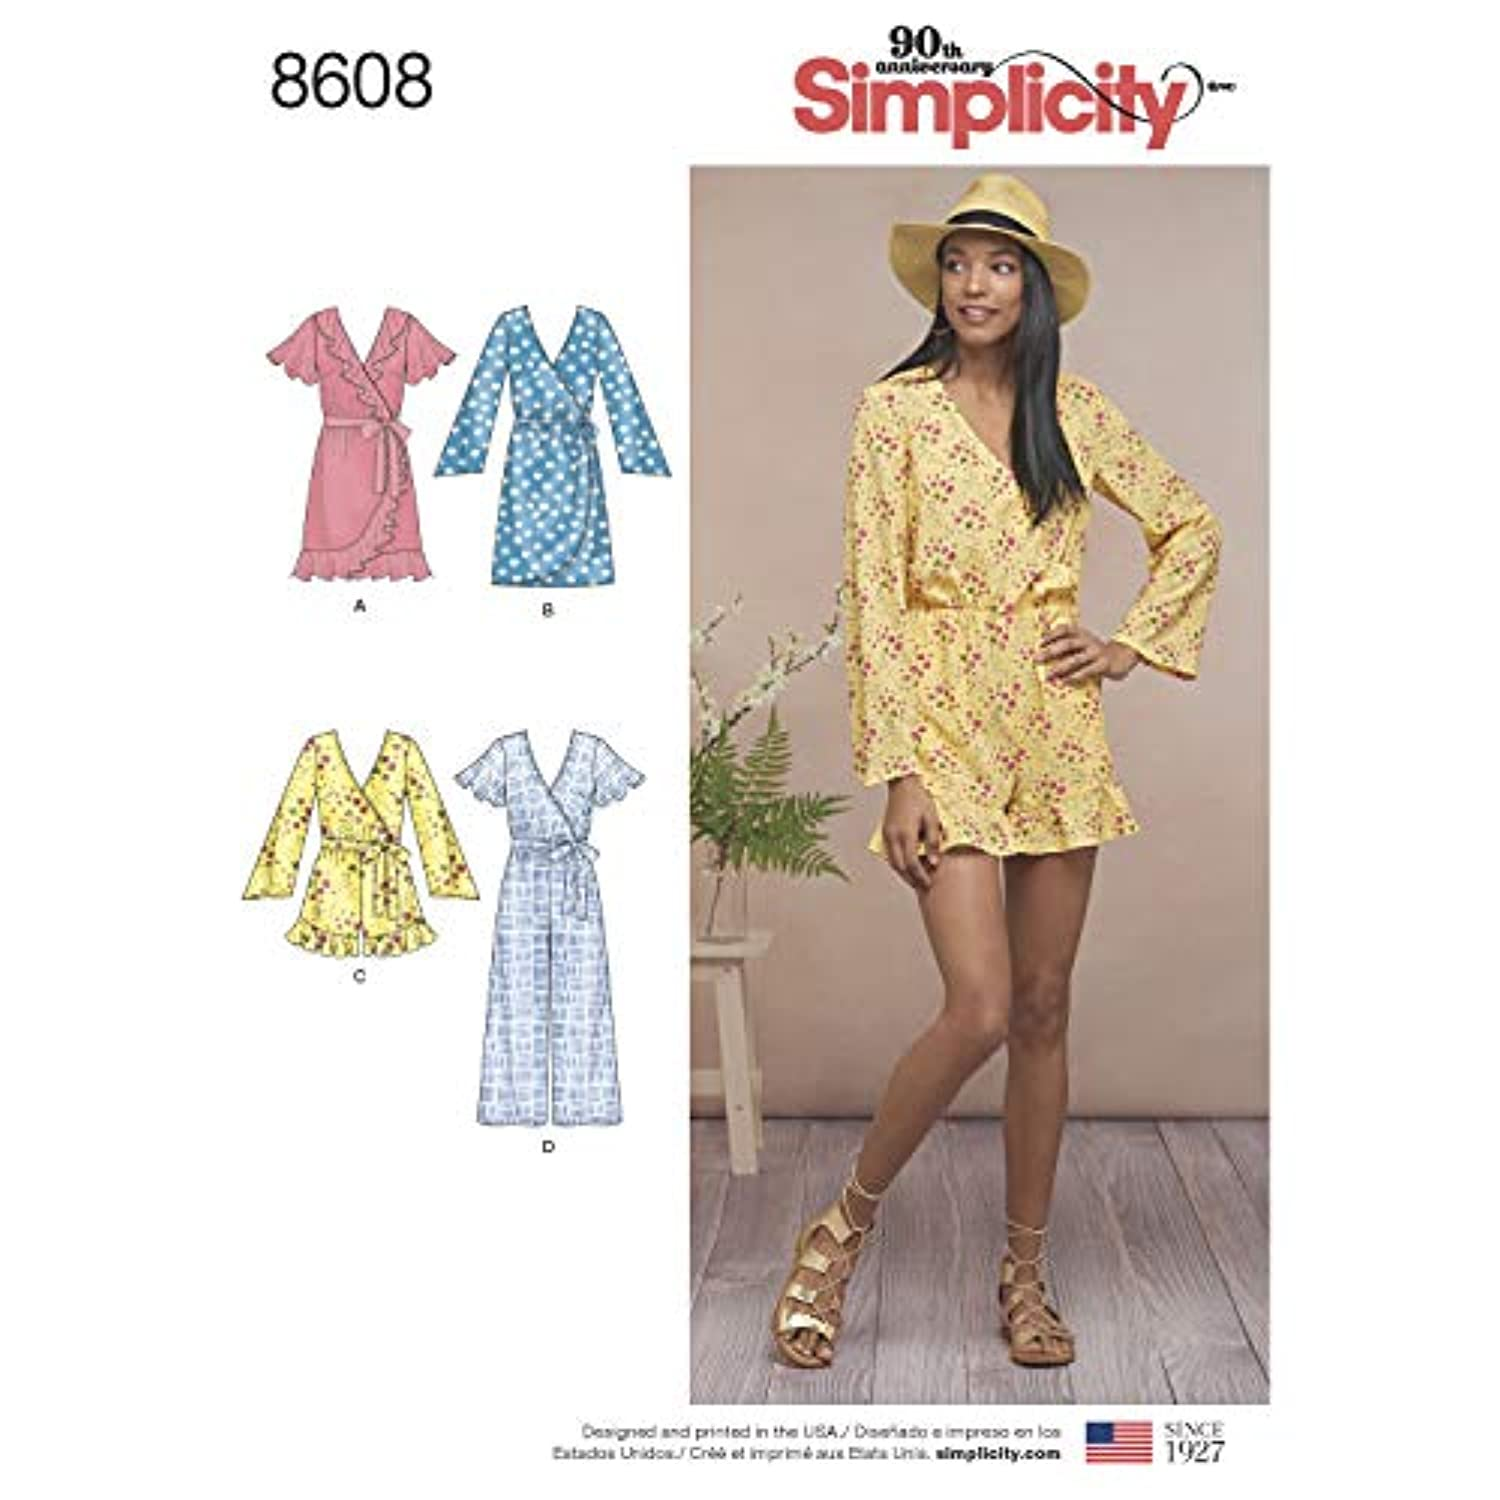 Simplicity Sewing Pattern D0891 / 8602 - Misses Tops in Two Lengths, R5 (14-16-18-20-22)